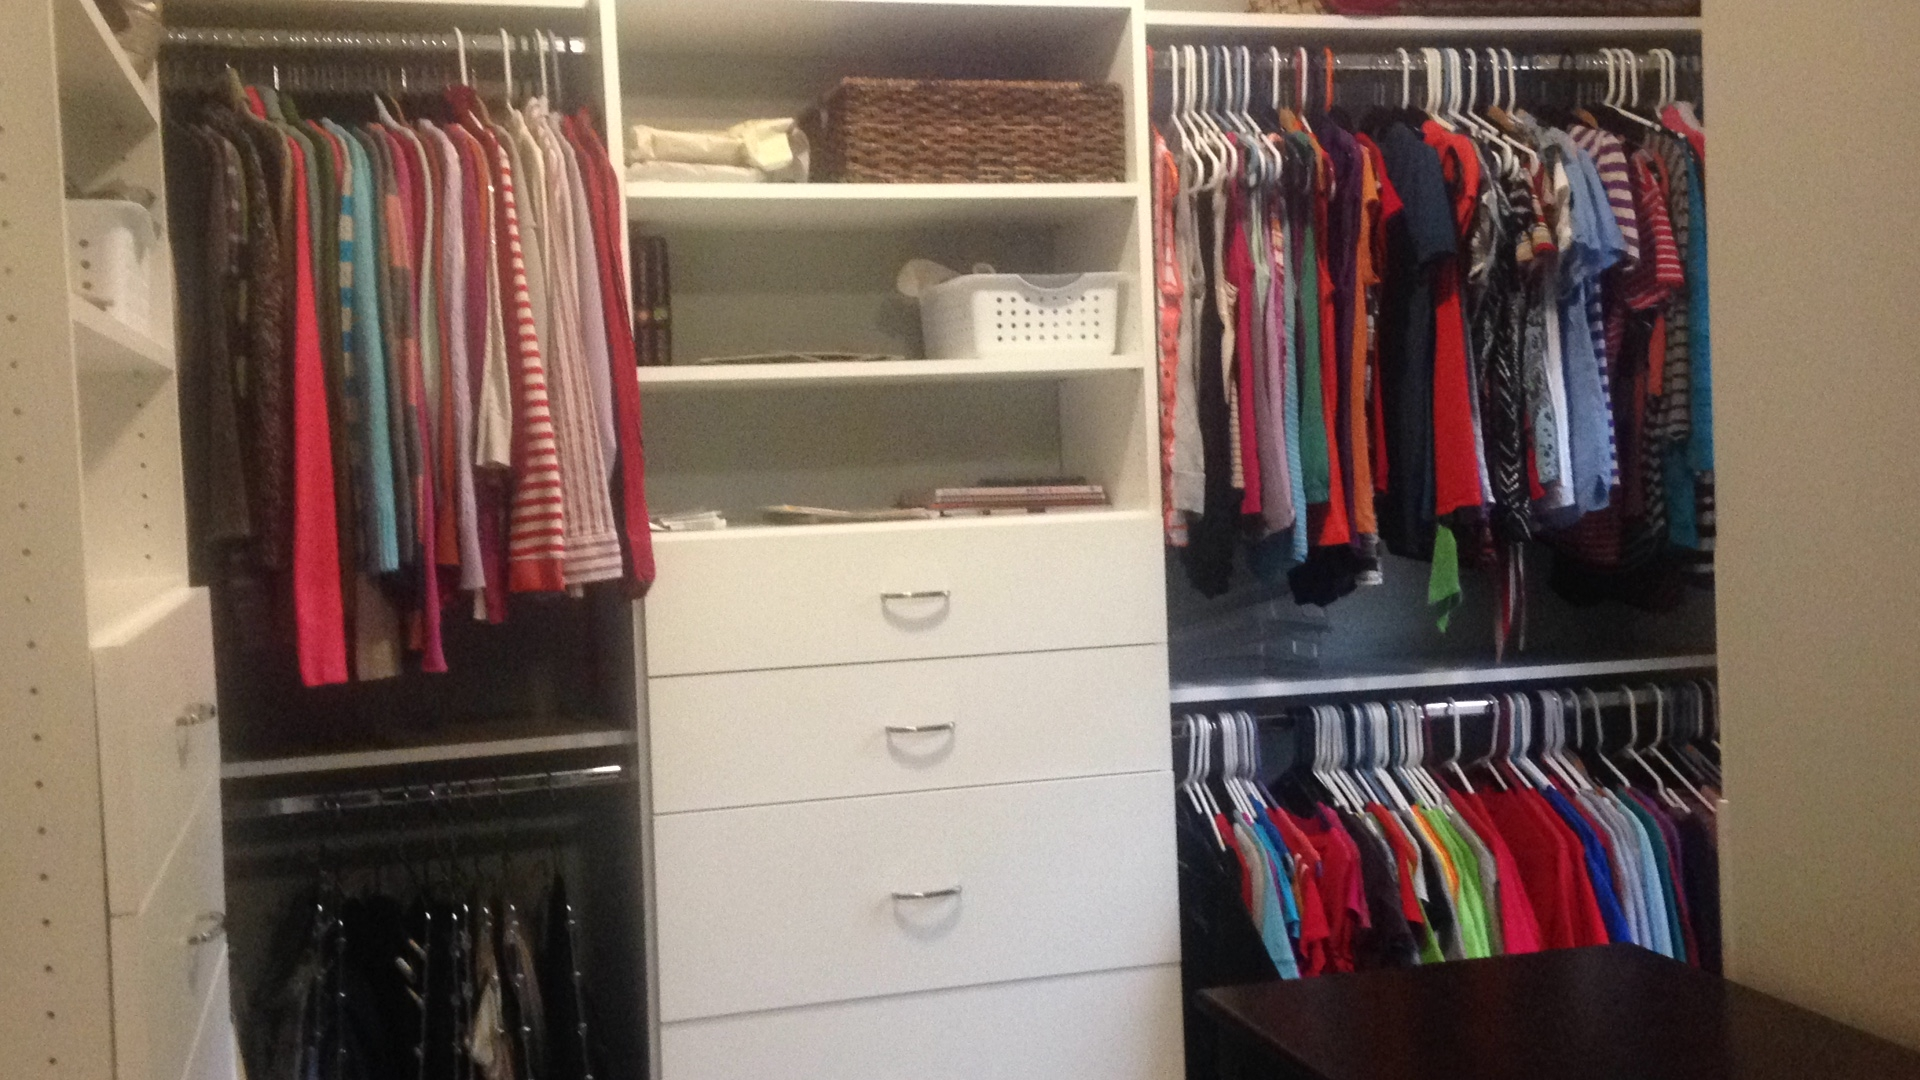 coat concepts organizers buy custom pantry systems built storage bins to build cabinets small shelving ideas organizer closets in drawers wardrobe affordable design furniture organization closet walk wall